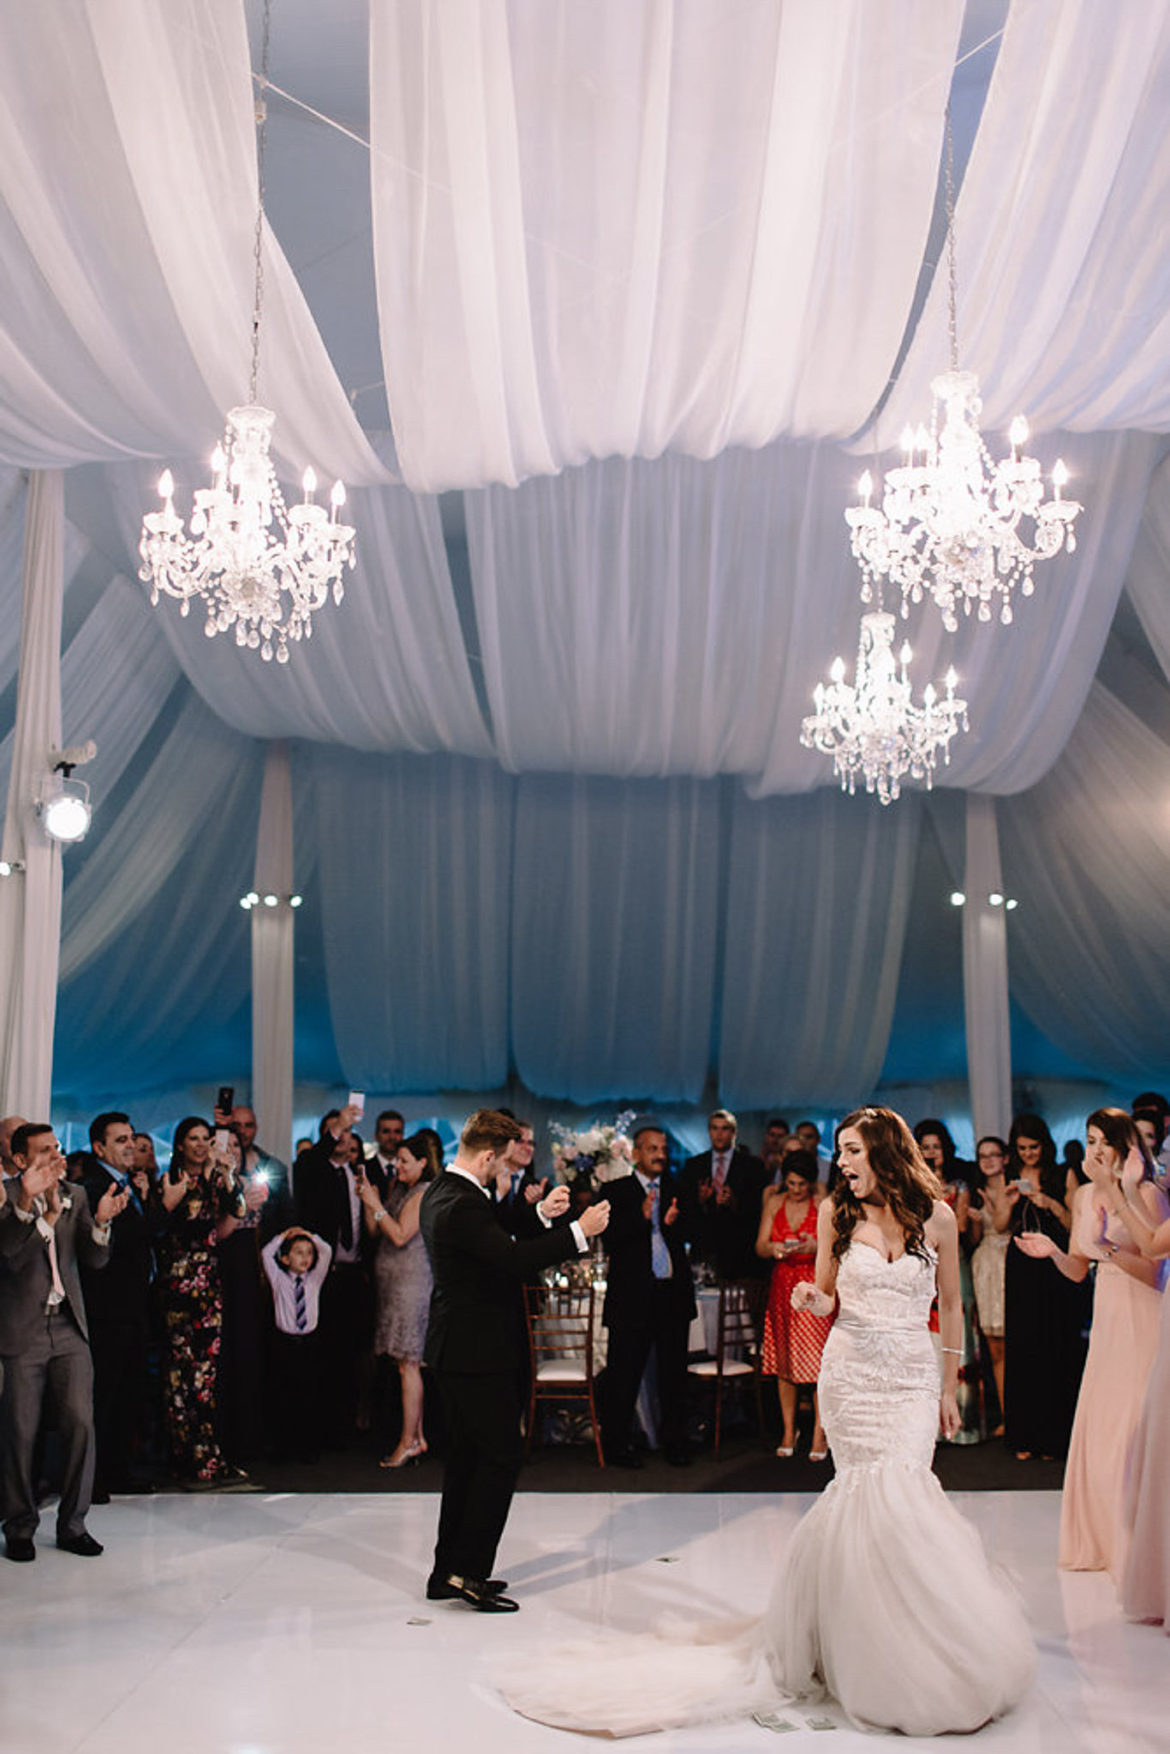 Elegant_Event_Lighting_Chicago_The_Morton_Arboretum_Lisle_White_White_Pavilion_Wedding_White_Sheer_Ceiling_Drapes_Crystal_Chandeliers_White_Dance_Floor